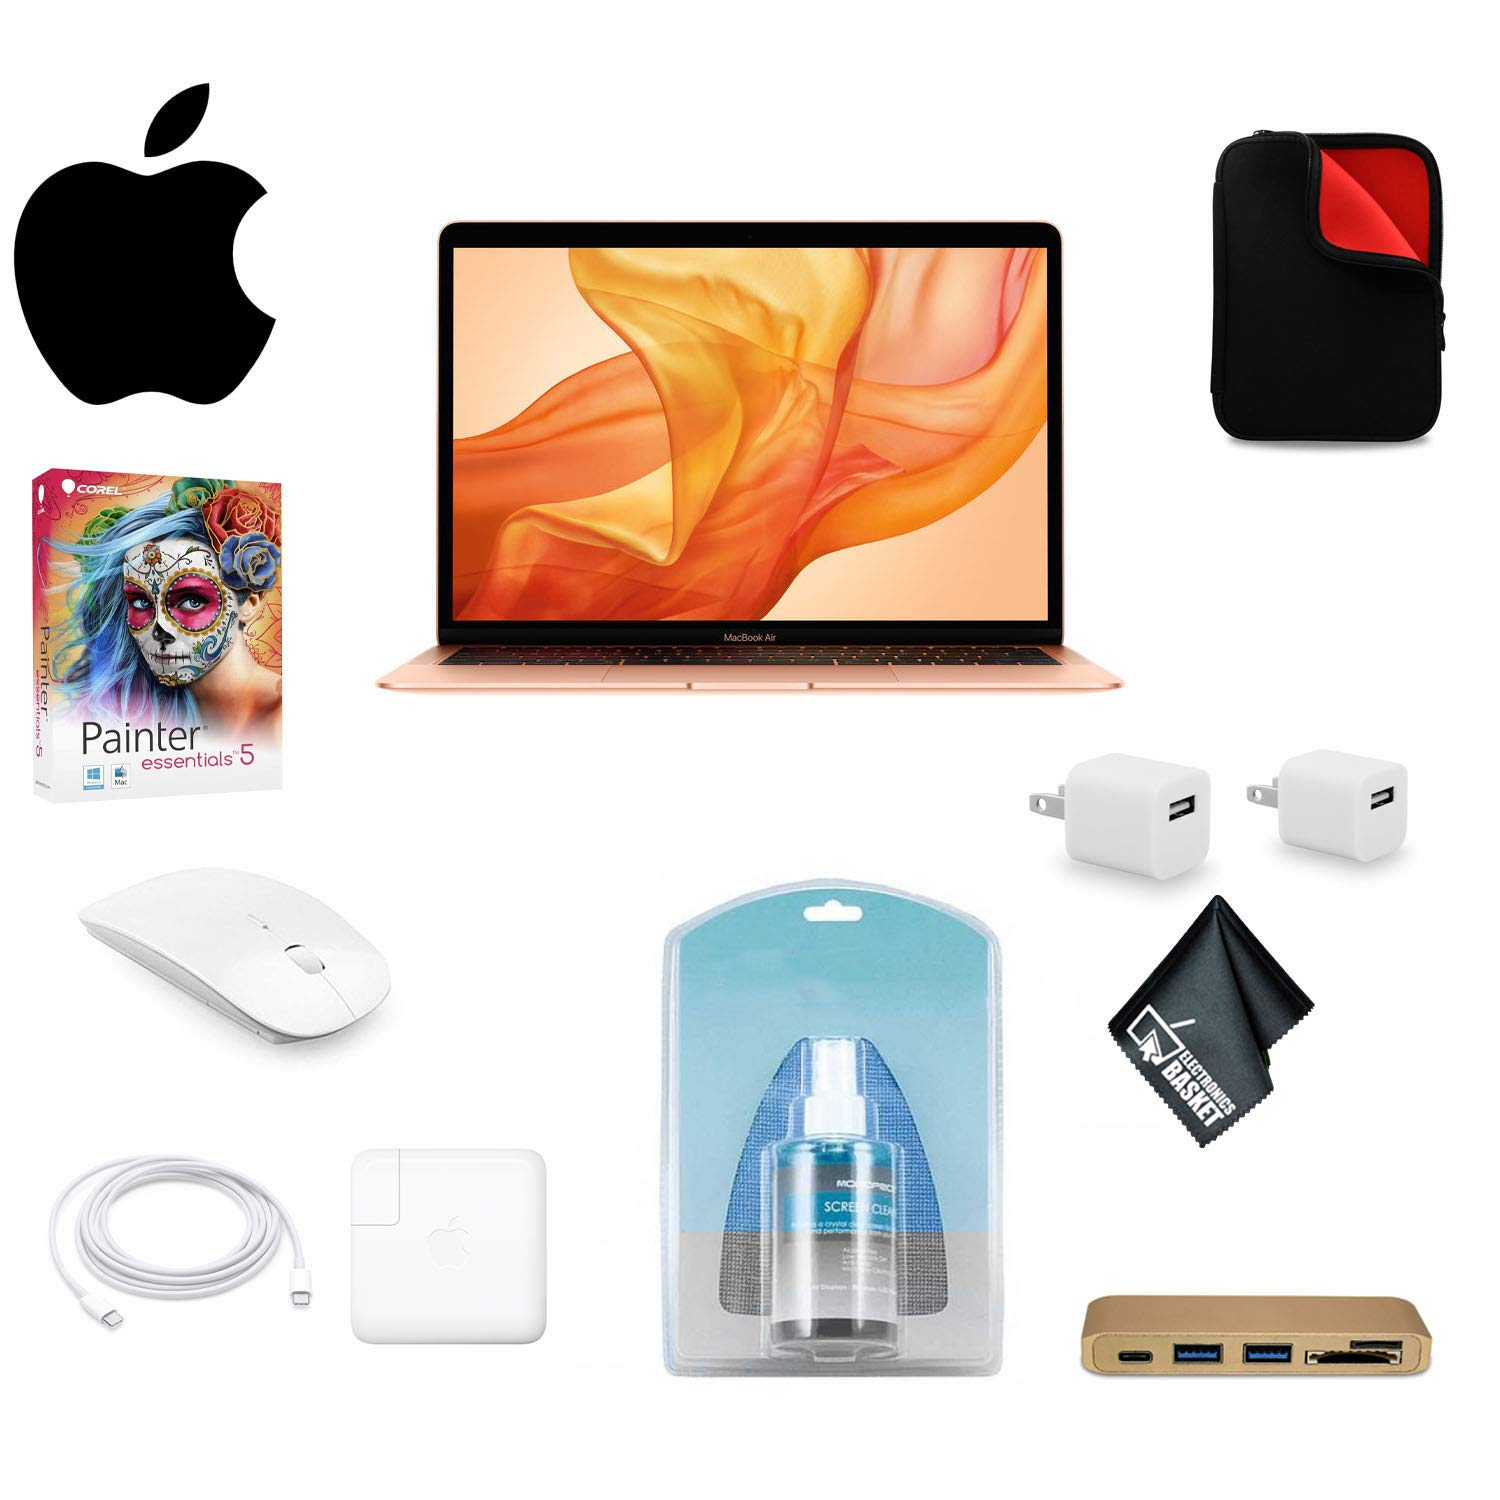 Apple 13.3 Inch MacBook Air Laptop with Retina Display (Late 2018 Version, Gold) MREA2LL/A 128GB SSD Bundle w/ Mouse + Carrying Case + Corel Mac Software Kit+ More